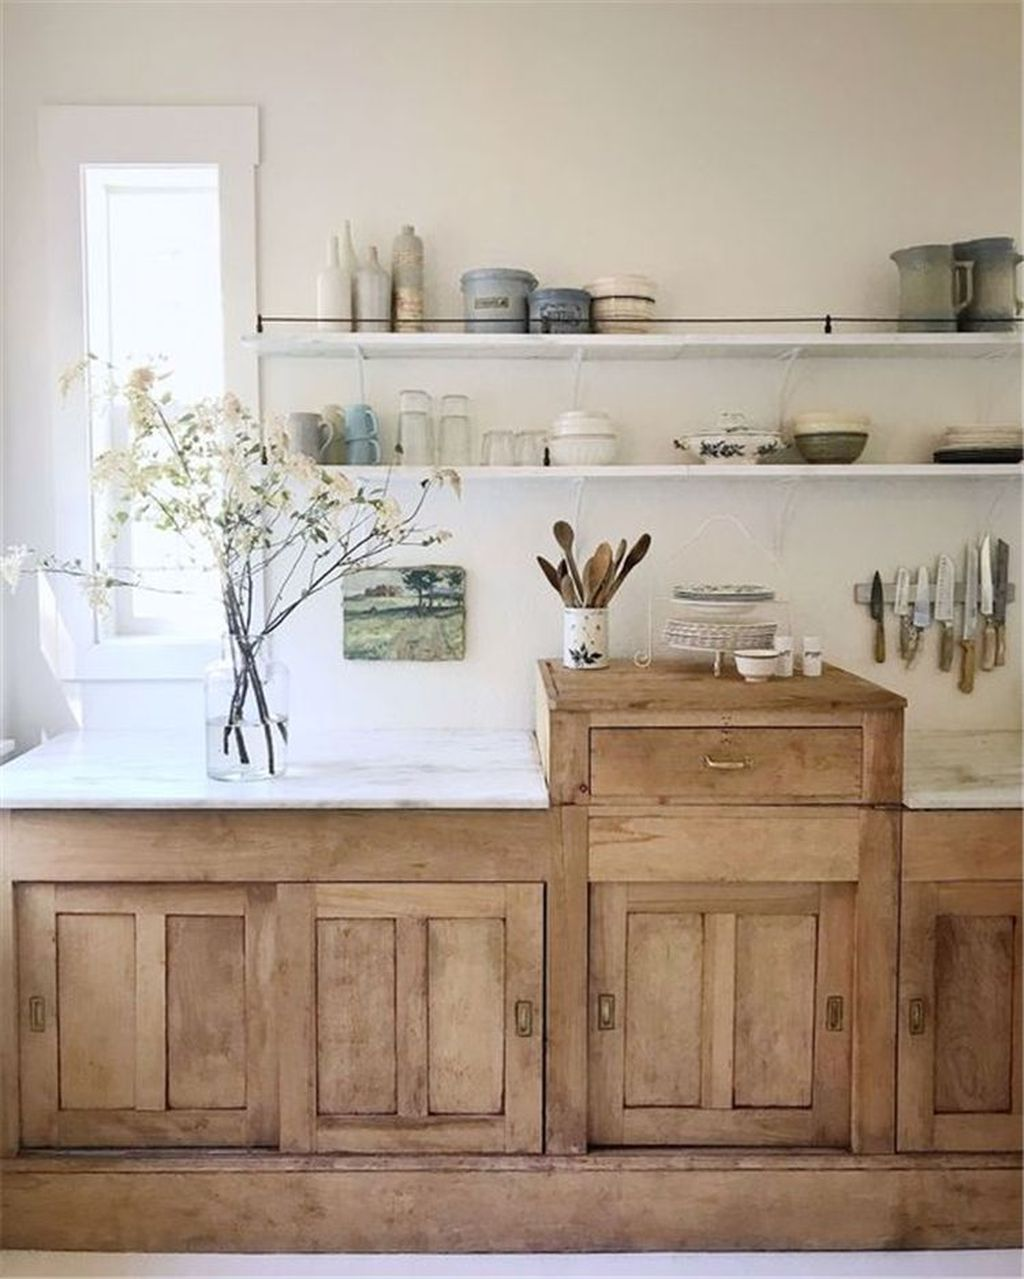 36 Inspiring Farmhouse Kitchen Colors Ideas #farmhousekitchencolors